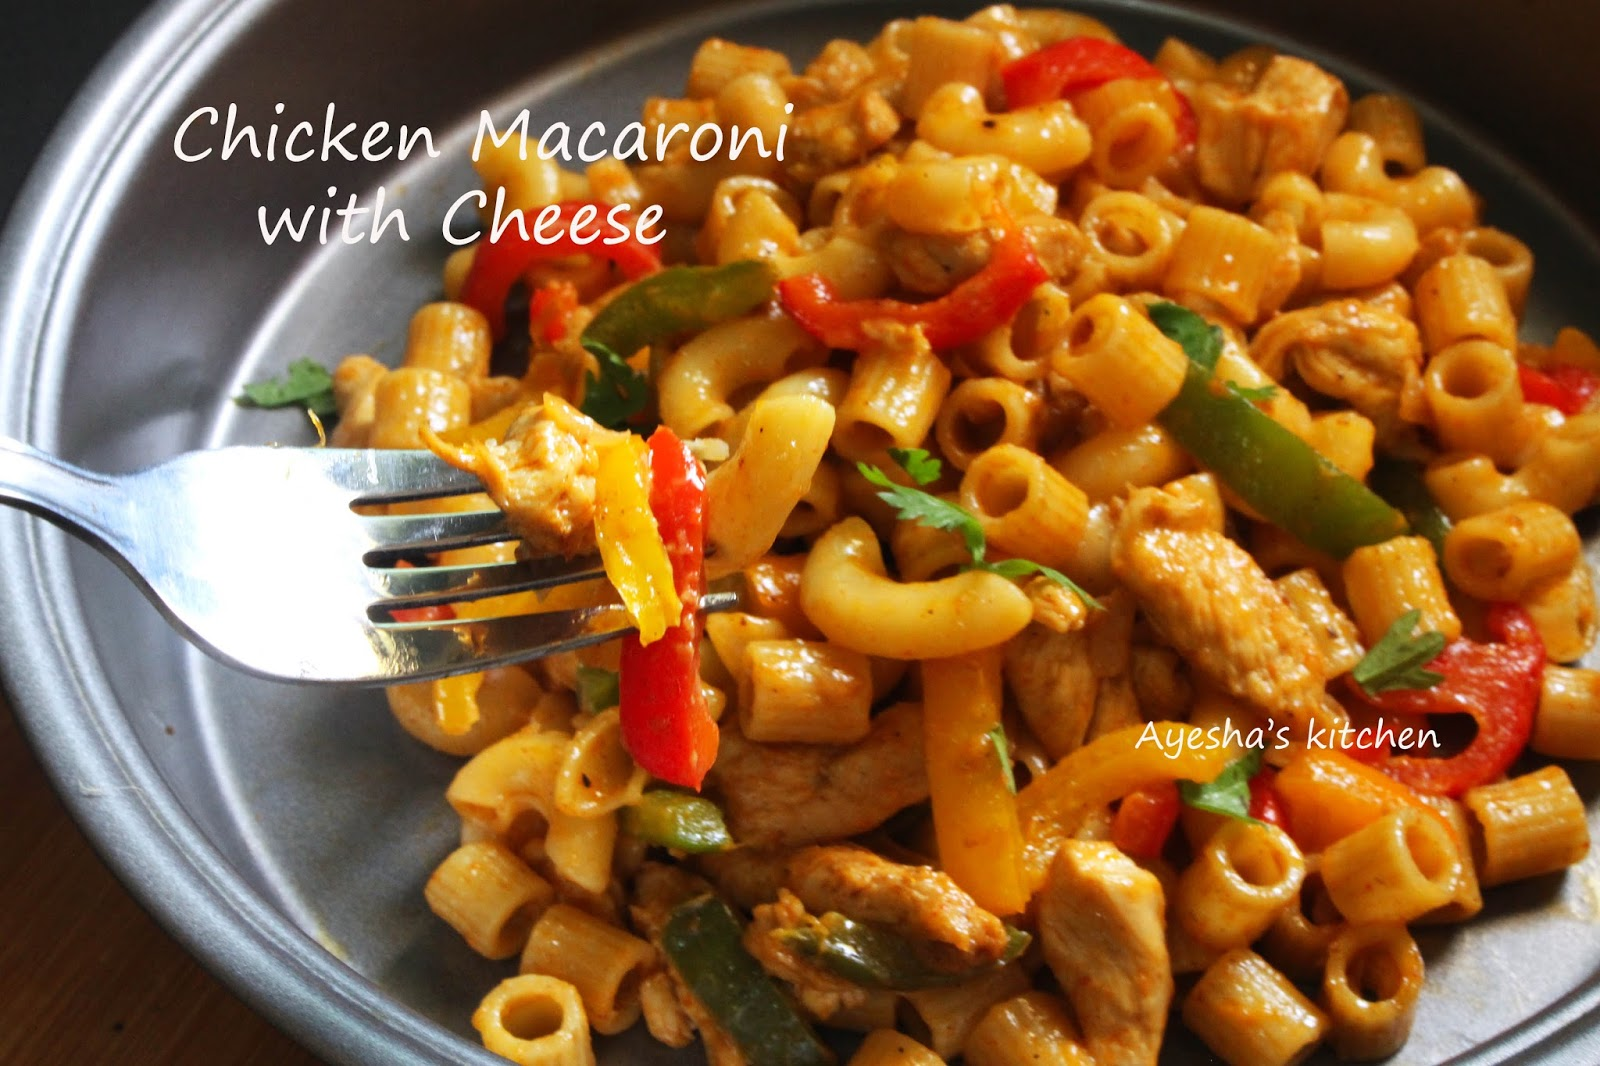 Chicken pasta recipes recipe for macaroni and cheese mac so here is the stove top easy recipe for mac and cheese chicken and macaroni recipes mac cheese recipe quick pasta recipes forumfinder Image collections